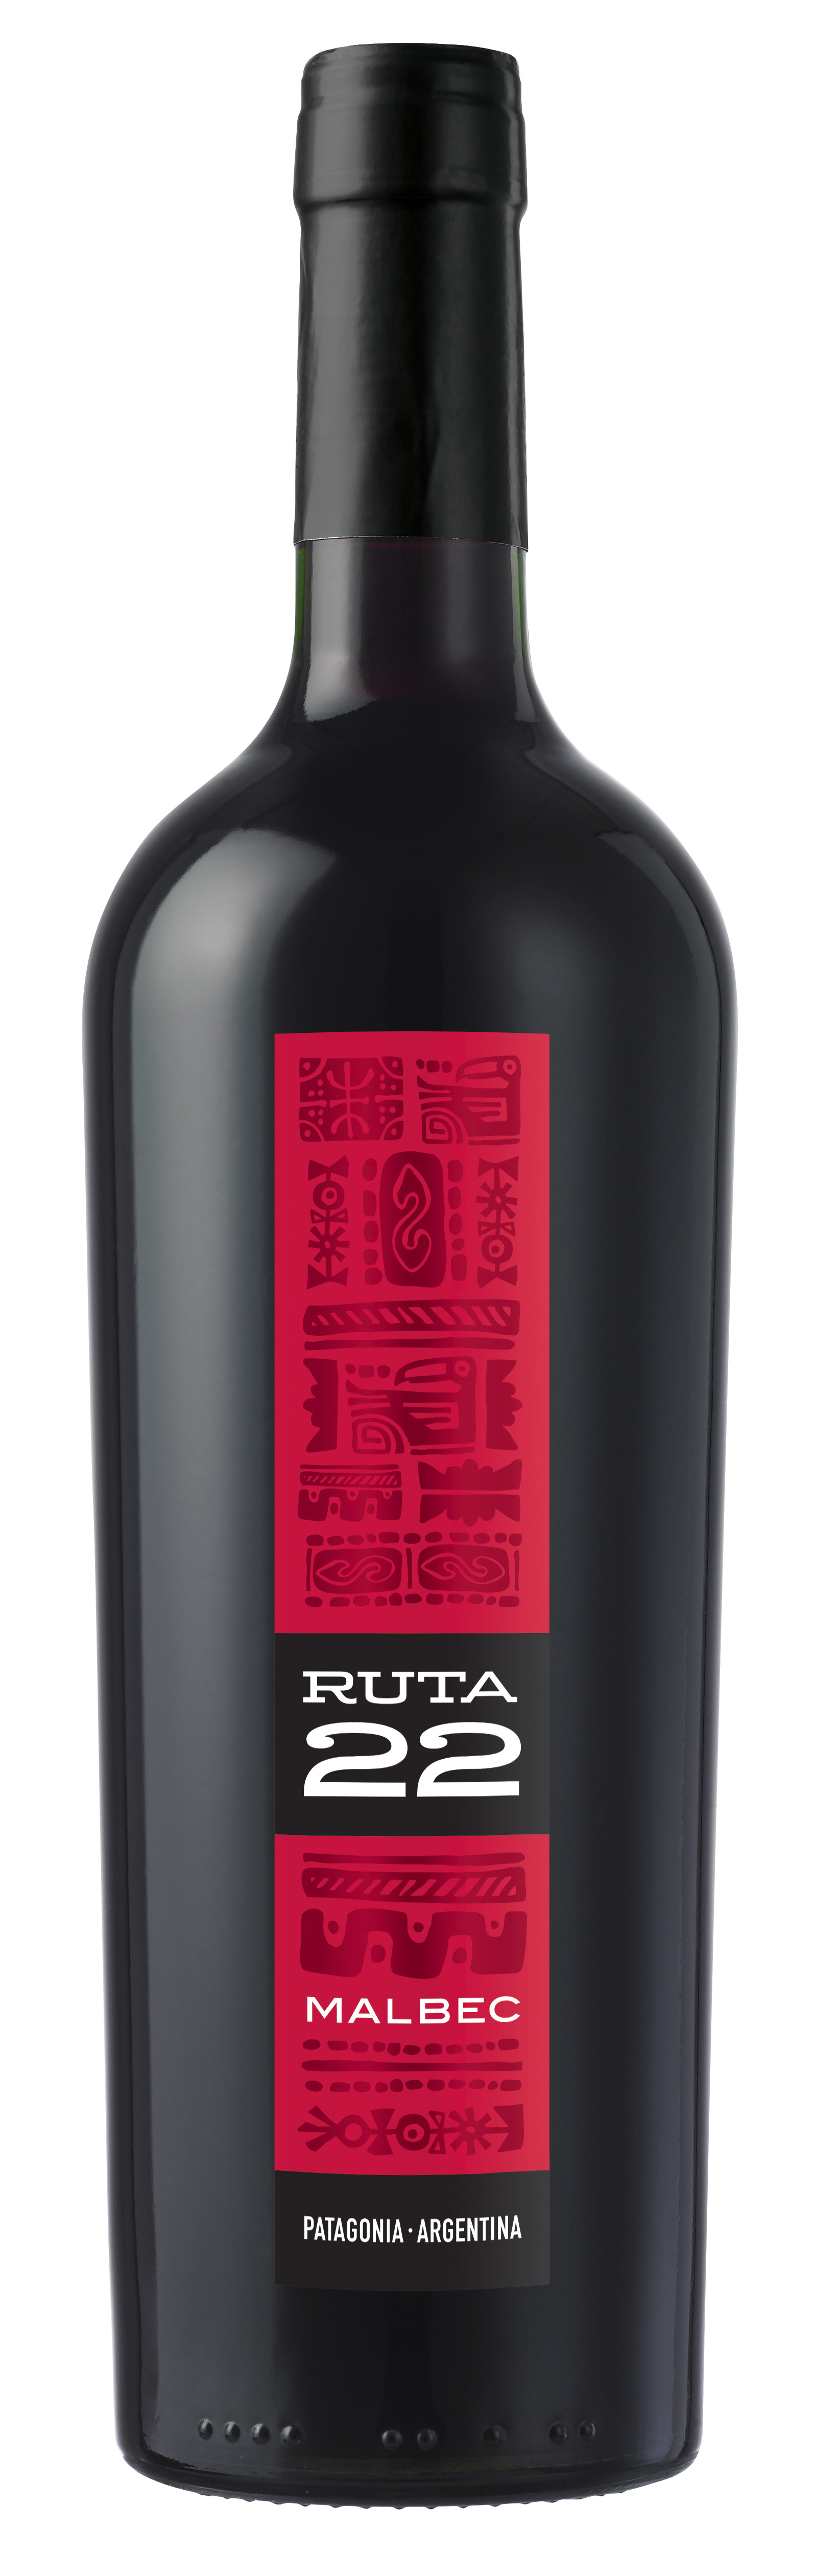 Ruta 22 Malbec My Own Personal Wine Love It Malbec Wine And Beer Shower Wine